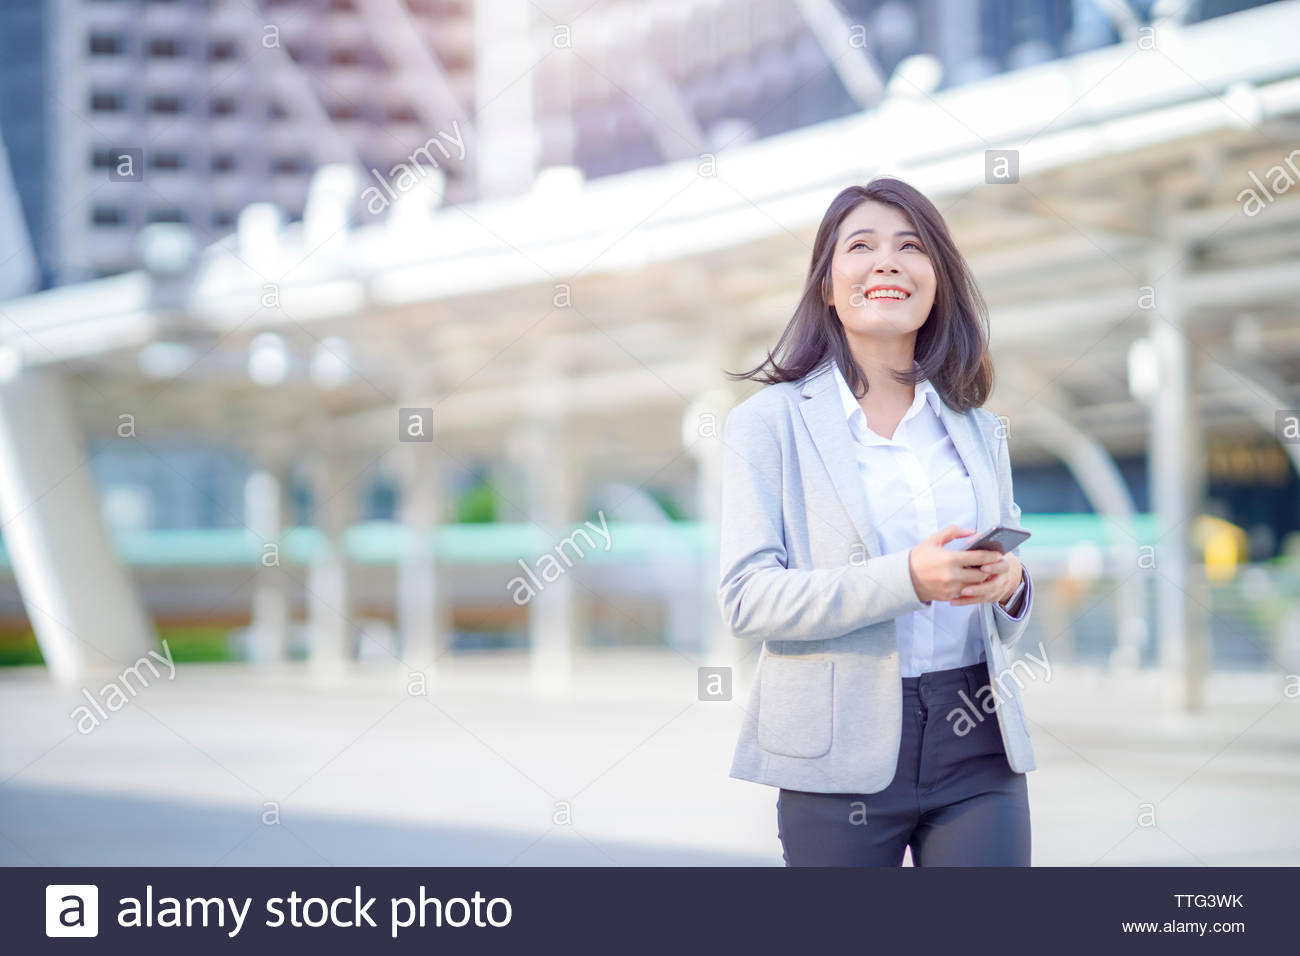 Asian businesswoman wearing suit holding smartphone going to work early in the morning - Stock Image